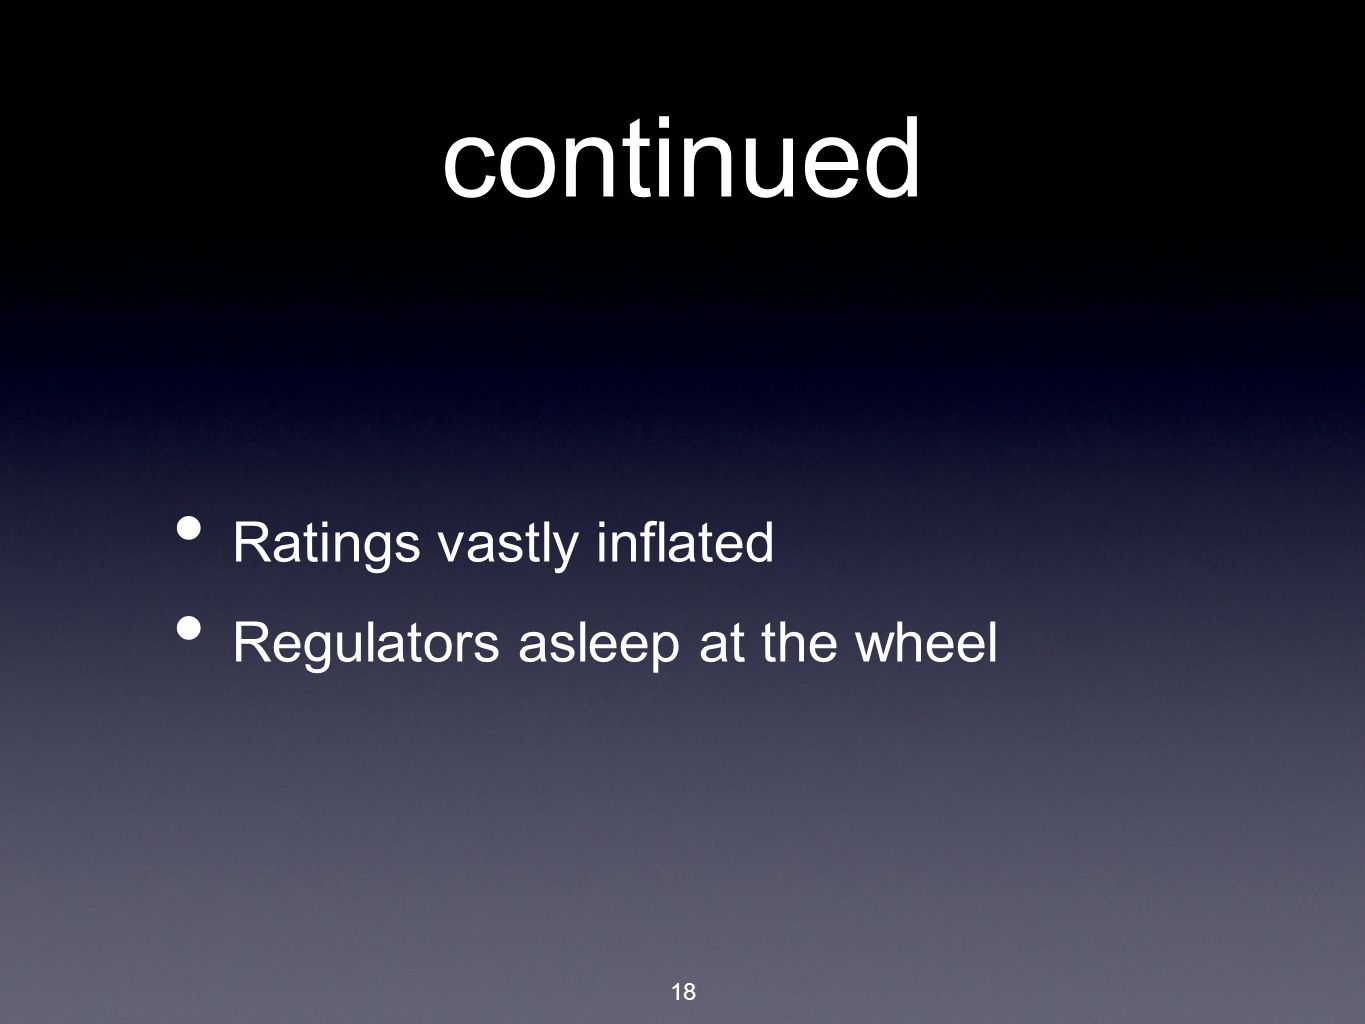 18 continued Ratings vastly inflated Regulators asleep at the wheel